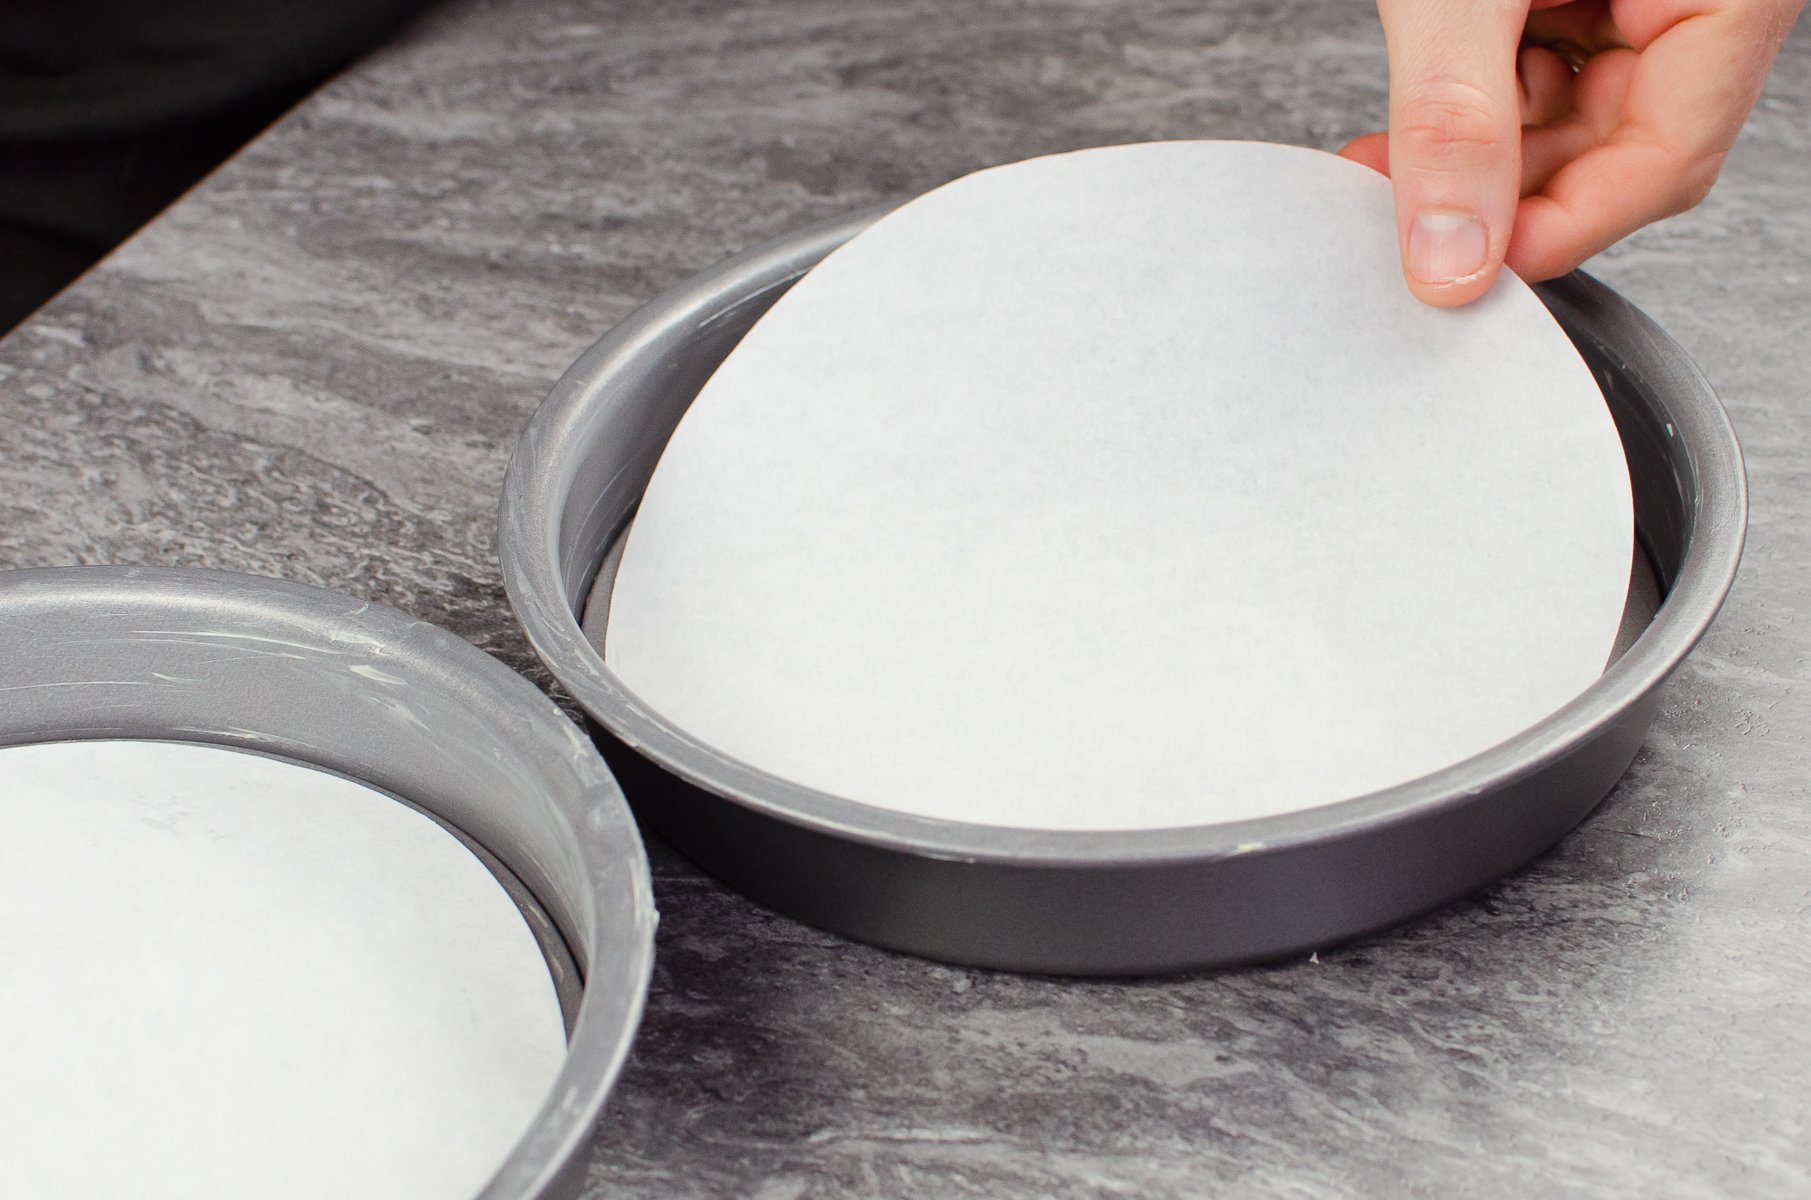 Placing parchment paper cake liners in the bottom of the two cake tins